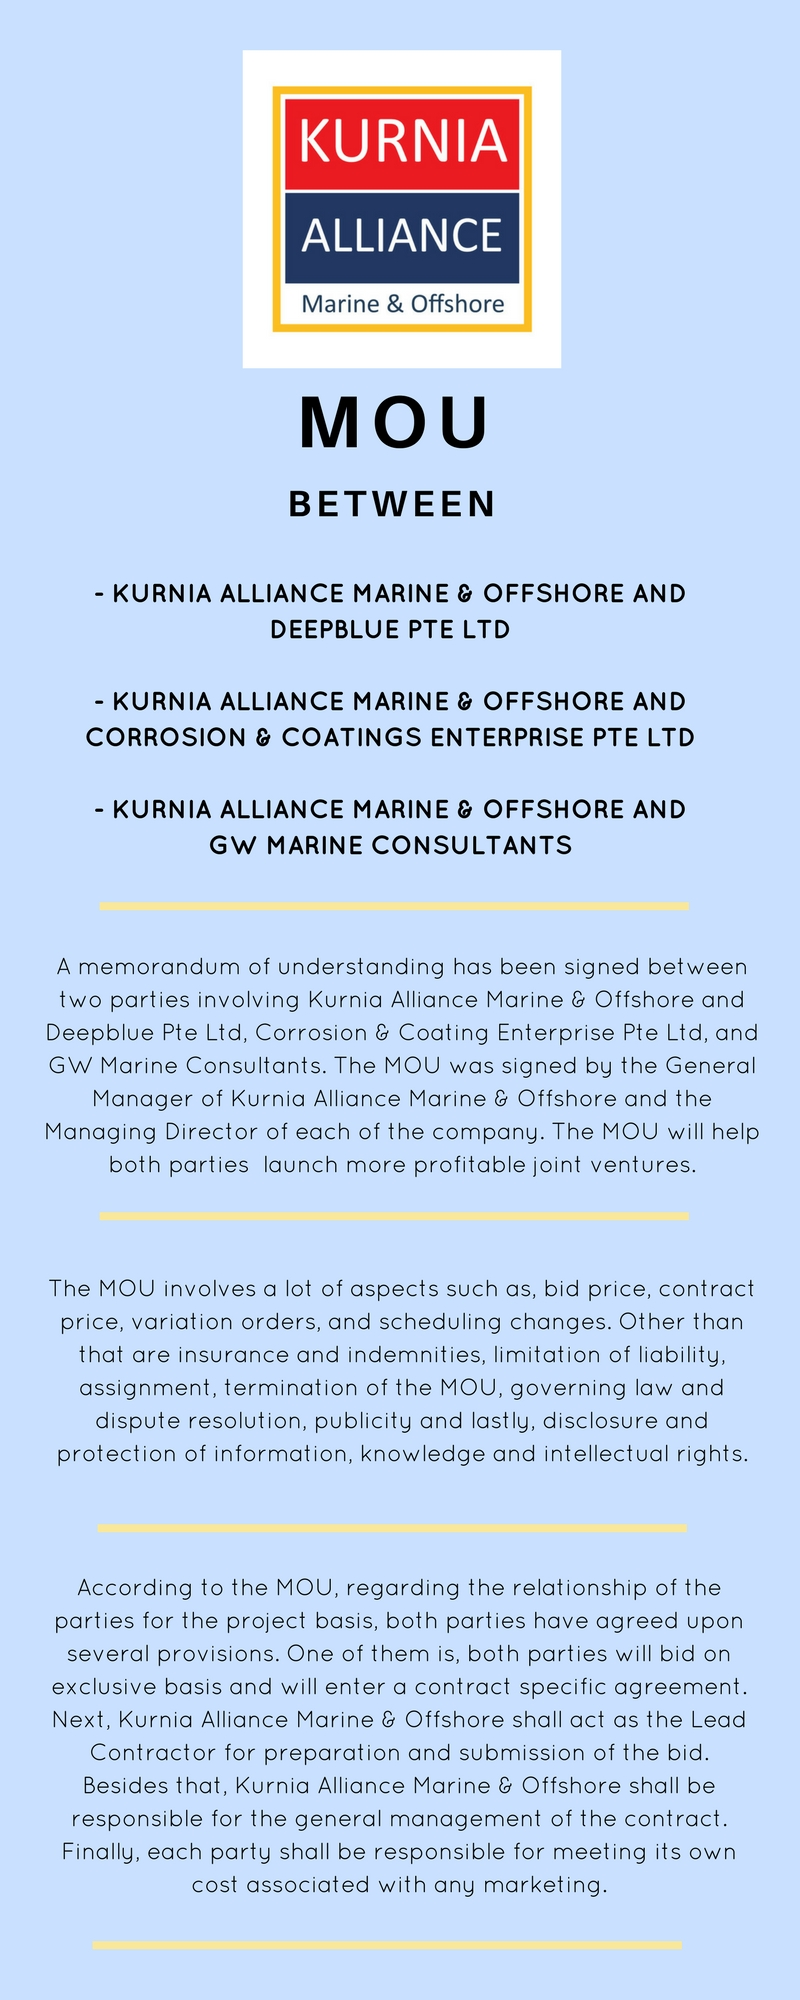 uploads1502417265108-KURNIA+ALLIANCE+MARINE+%26+OFFSHORE+MOU.jpg